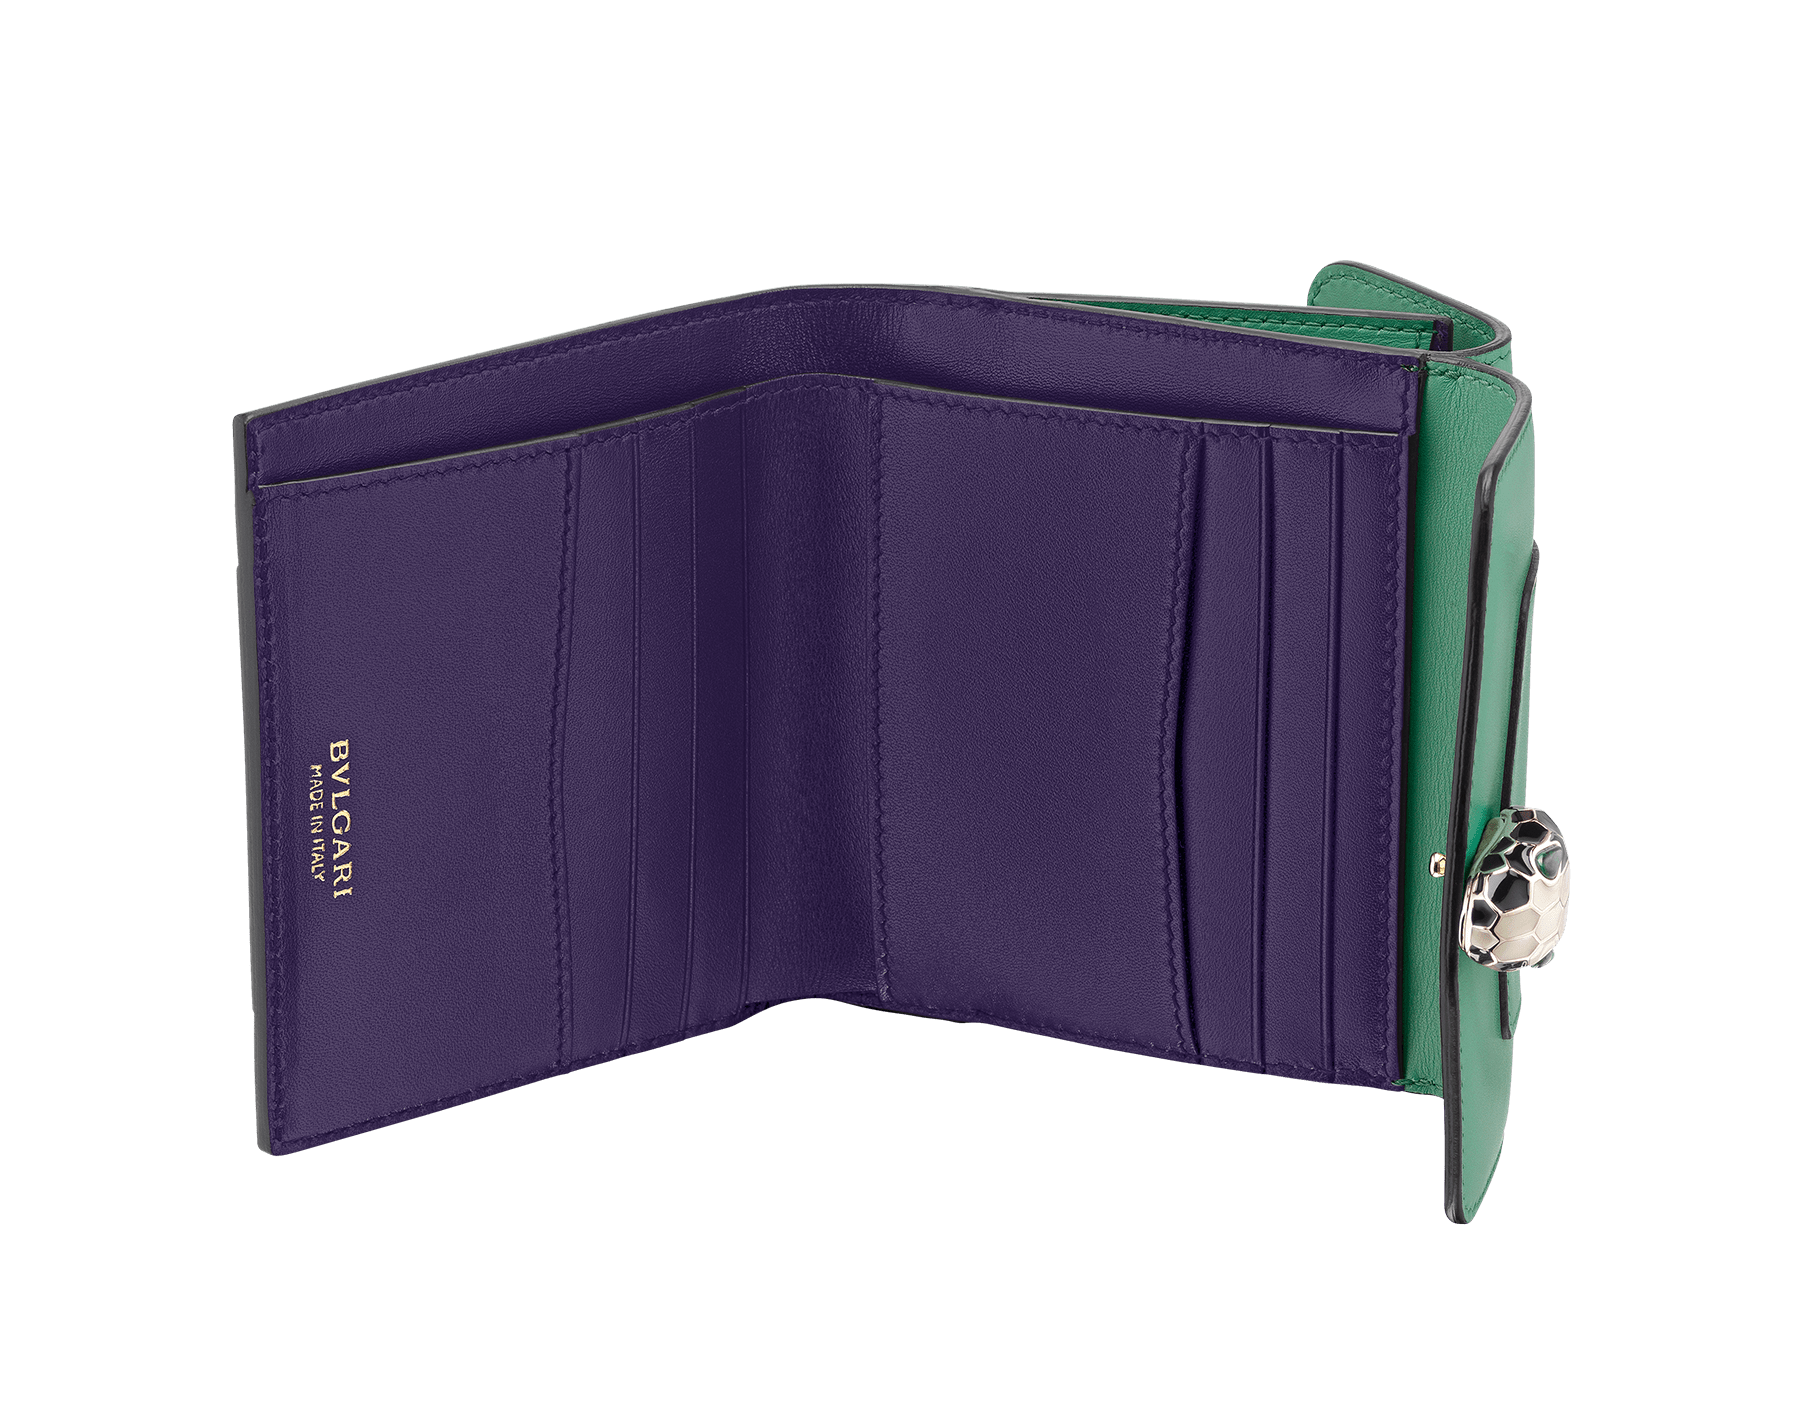 Square compact wallet in emerald green calf leather and violet amethyst calf leather. Brass light gold plated hardware. Serpenti head stud closure in black and white enamel with eyes in green malachite. Double flap cover. Six credit card slots, one bill compartment, two additional compartments and a change holder. Also available in other colours. 11 x 10 cm. - 4.3 x 3.9 281382 image 2